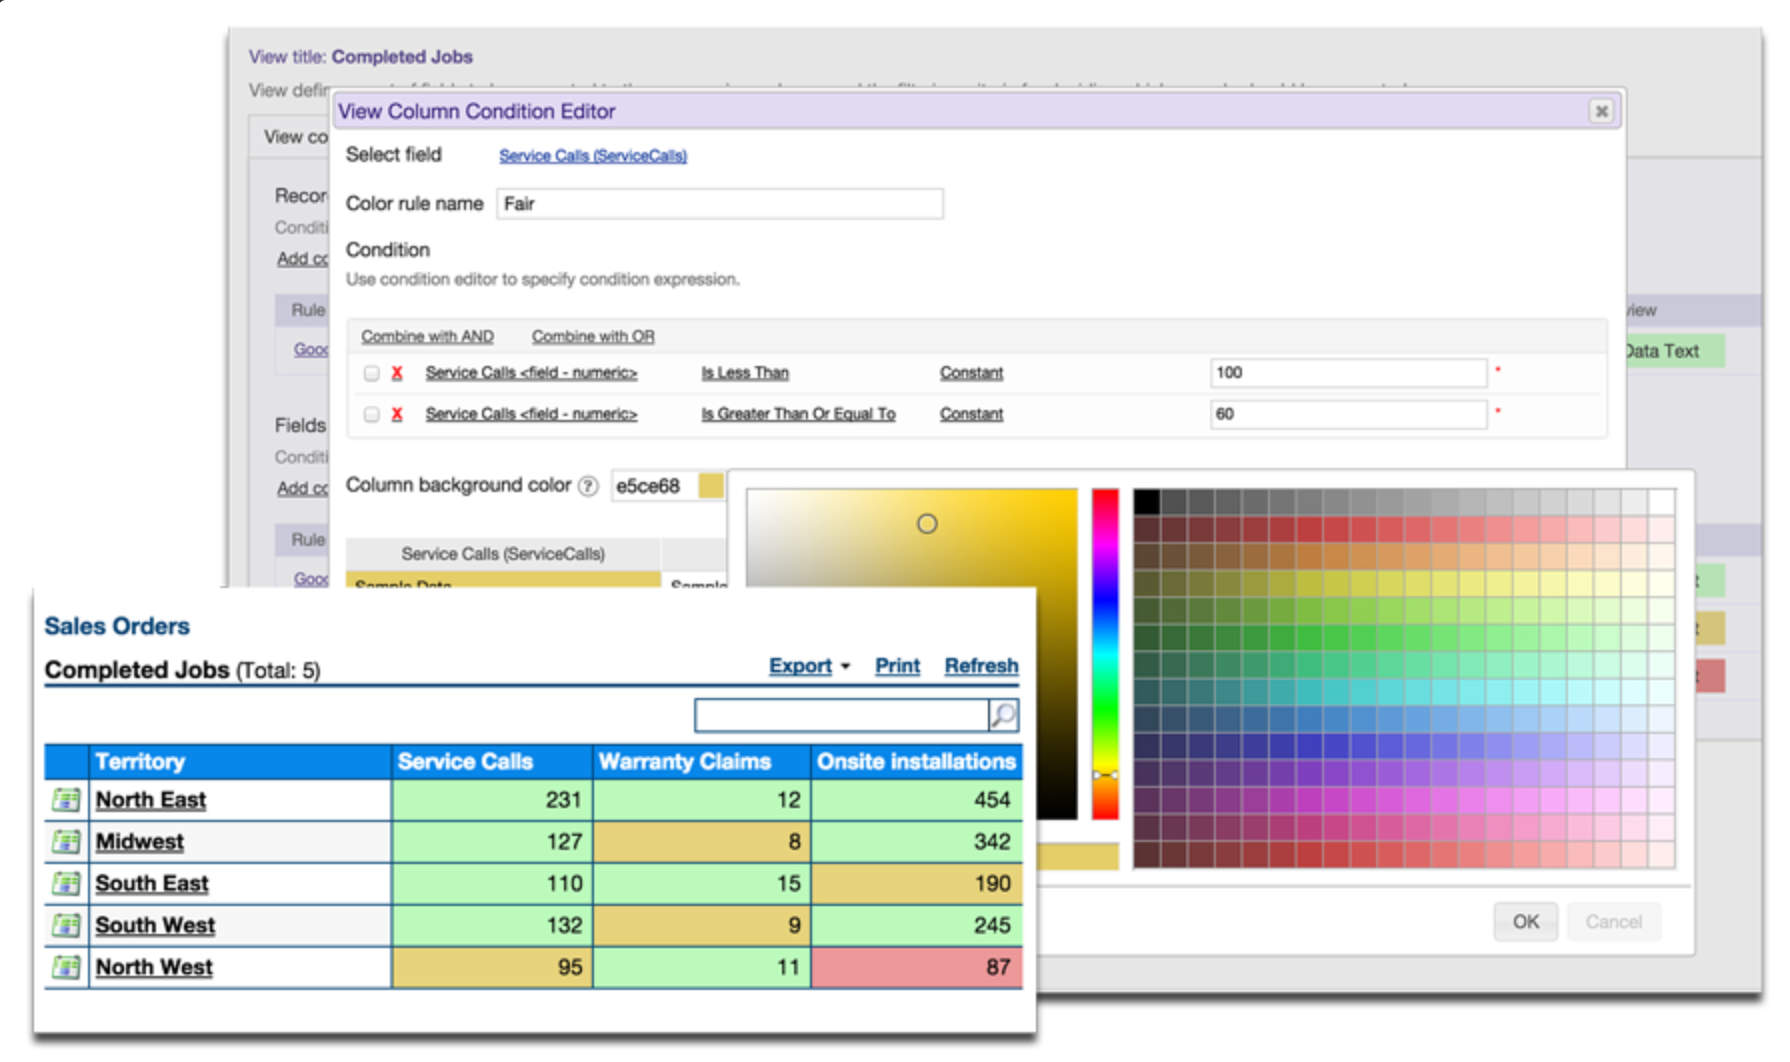 Set custom business rules to color-code records in order to quickly identify and act on issues that require attention